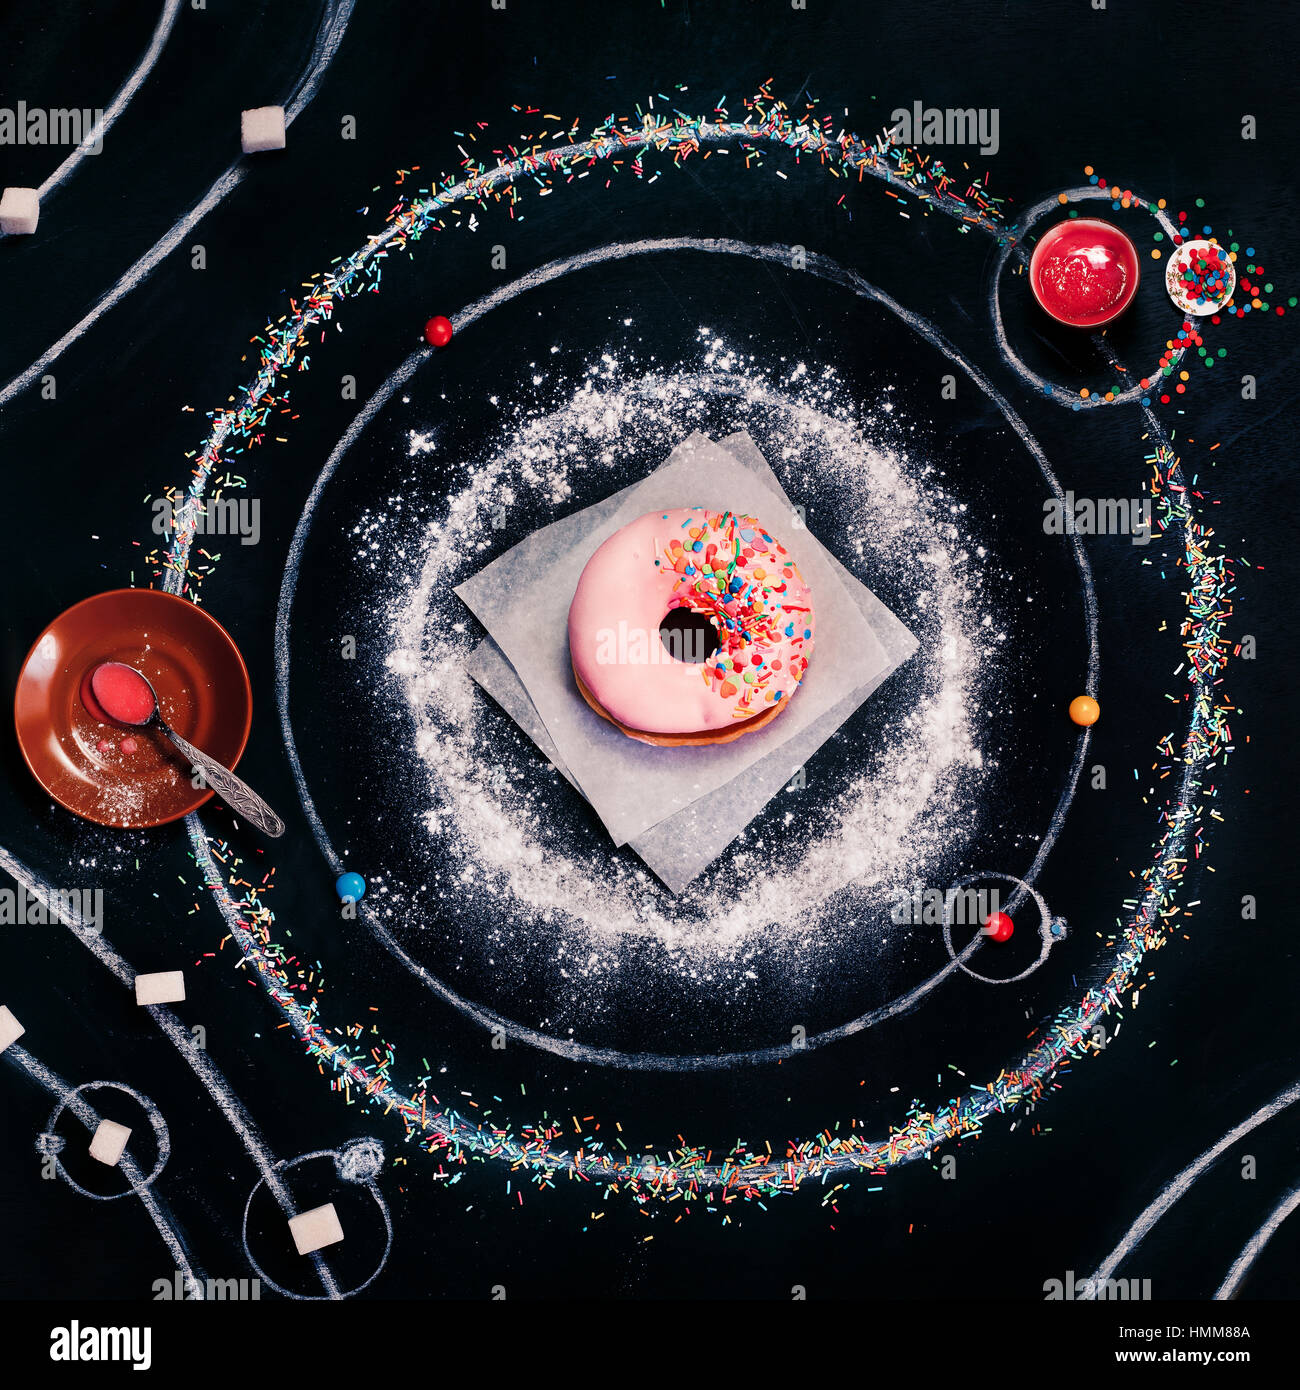 Sweets in space: Donut system - Stock Image